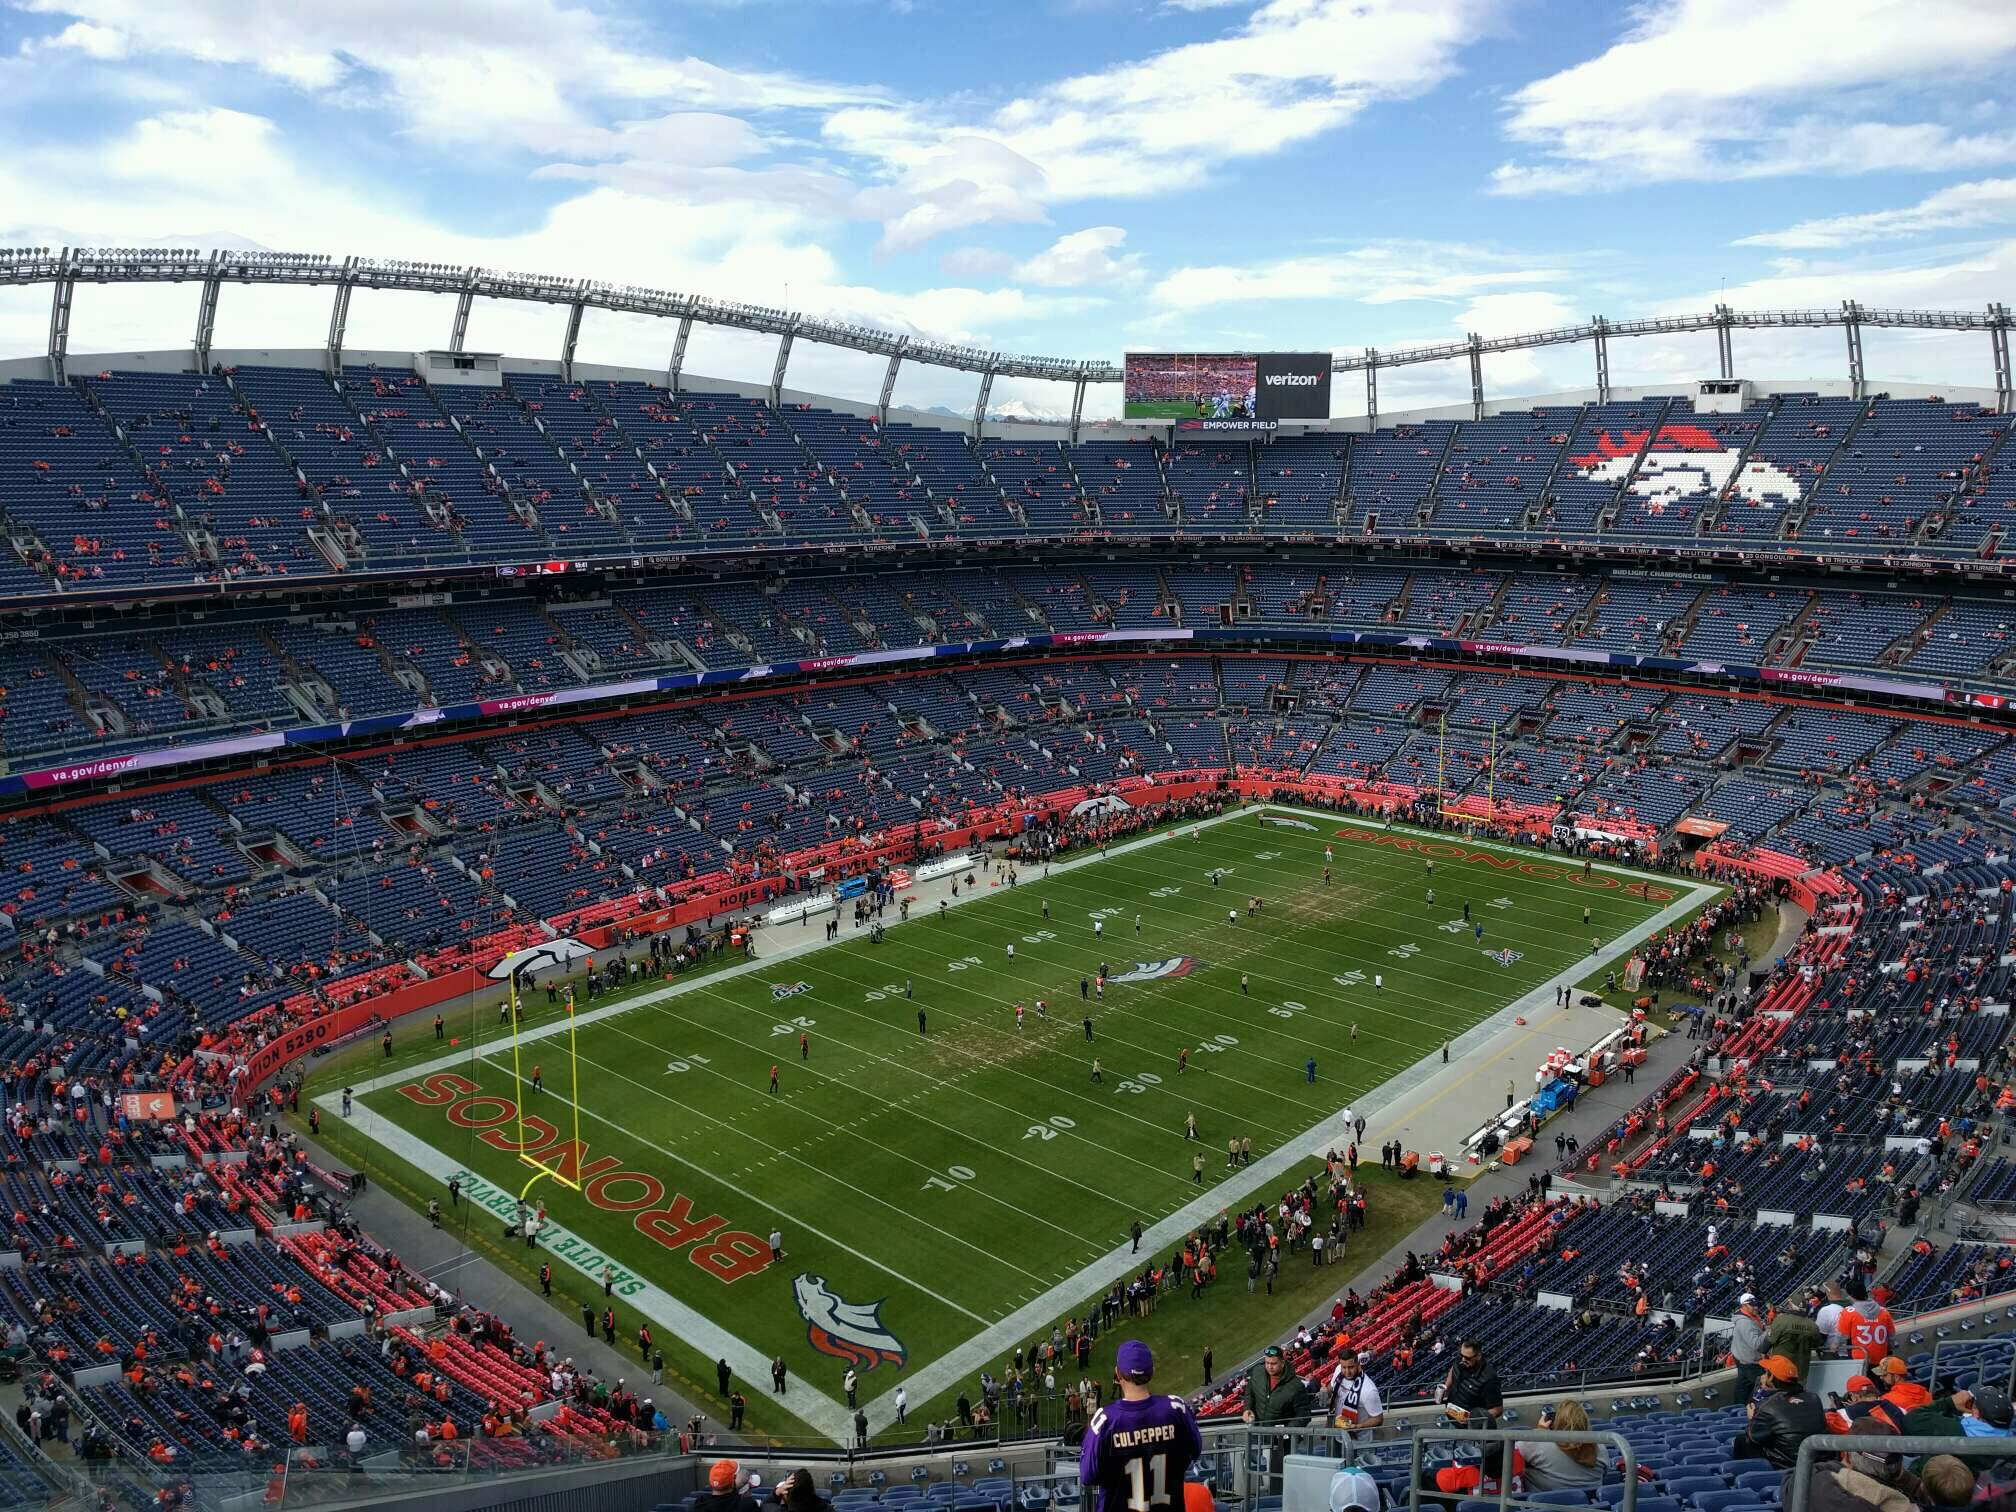 Empower Field at Mile High Stadium Section 542 Rangée 20 Siège 5